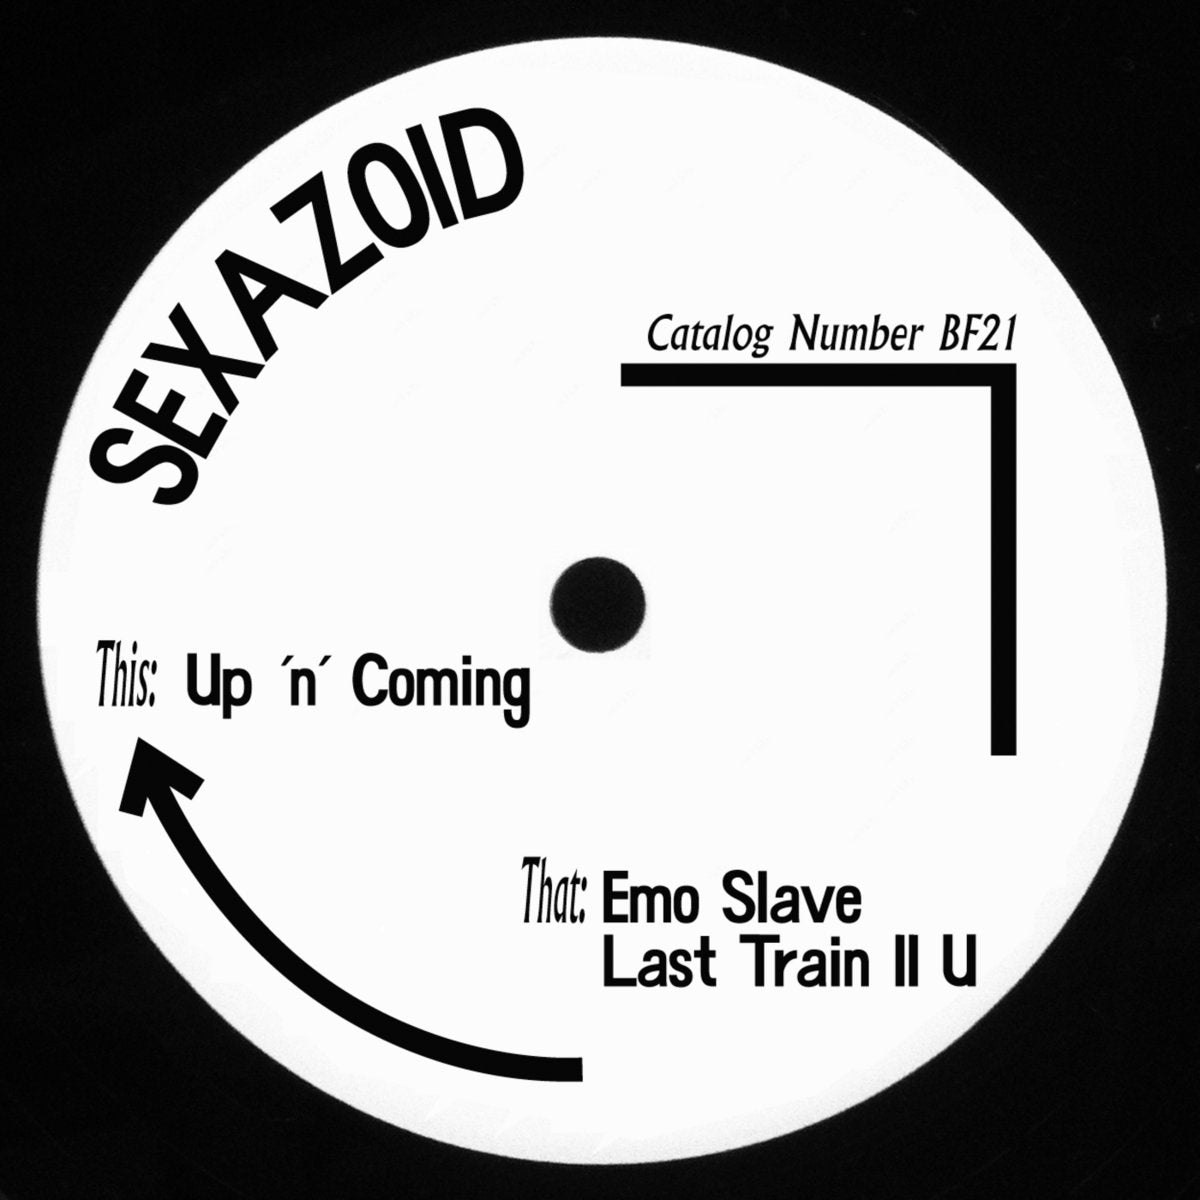 Sexazoid - Up 'n' Coming